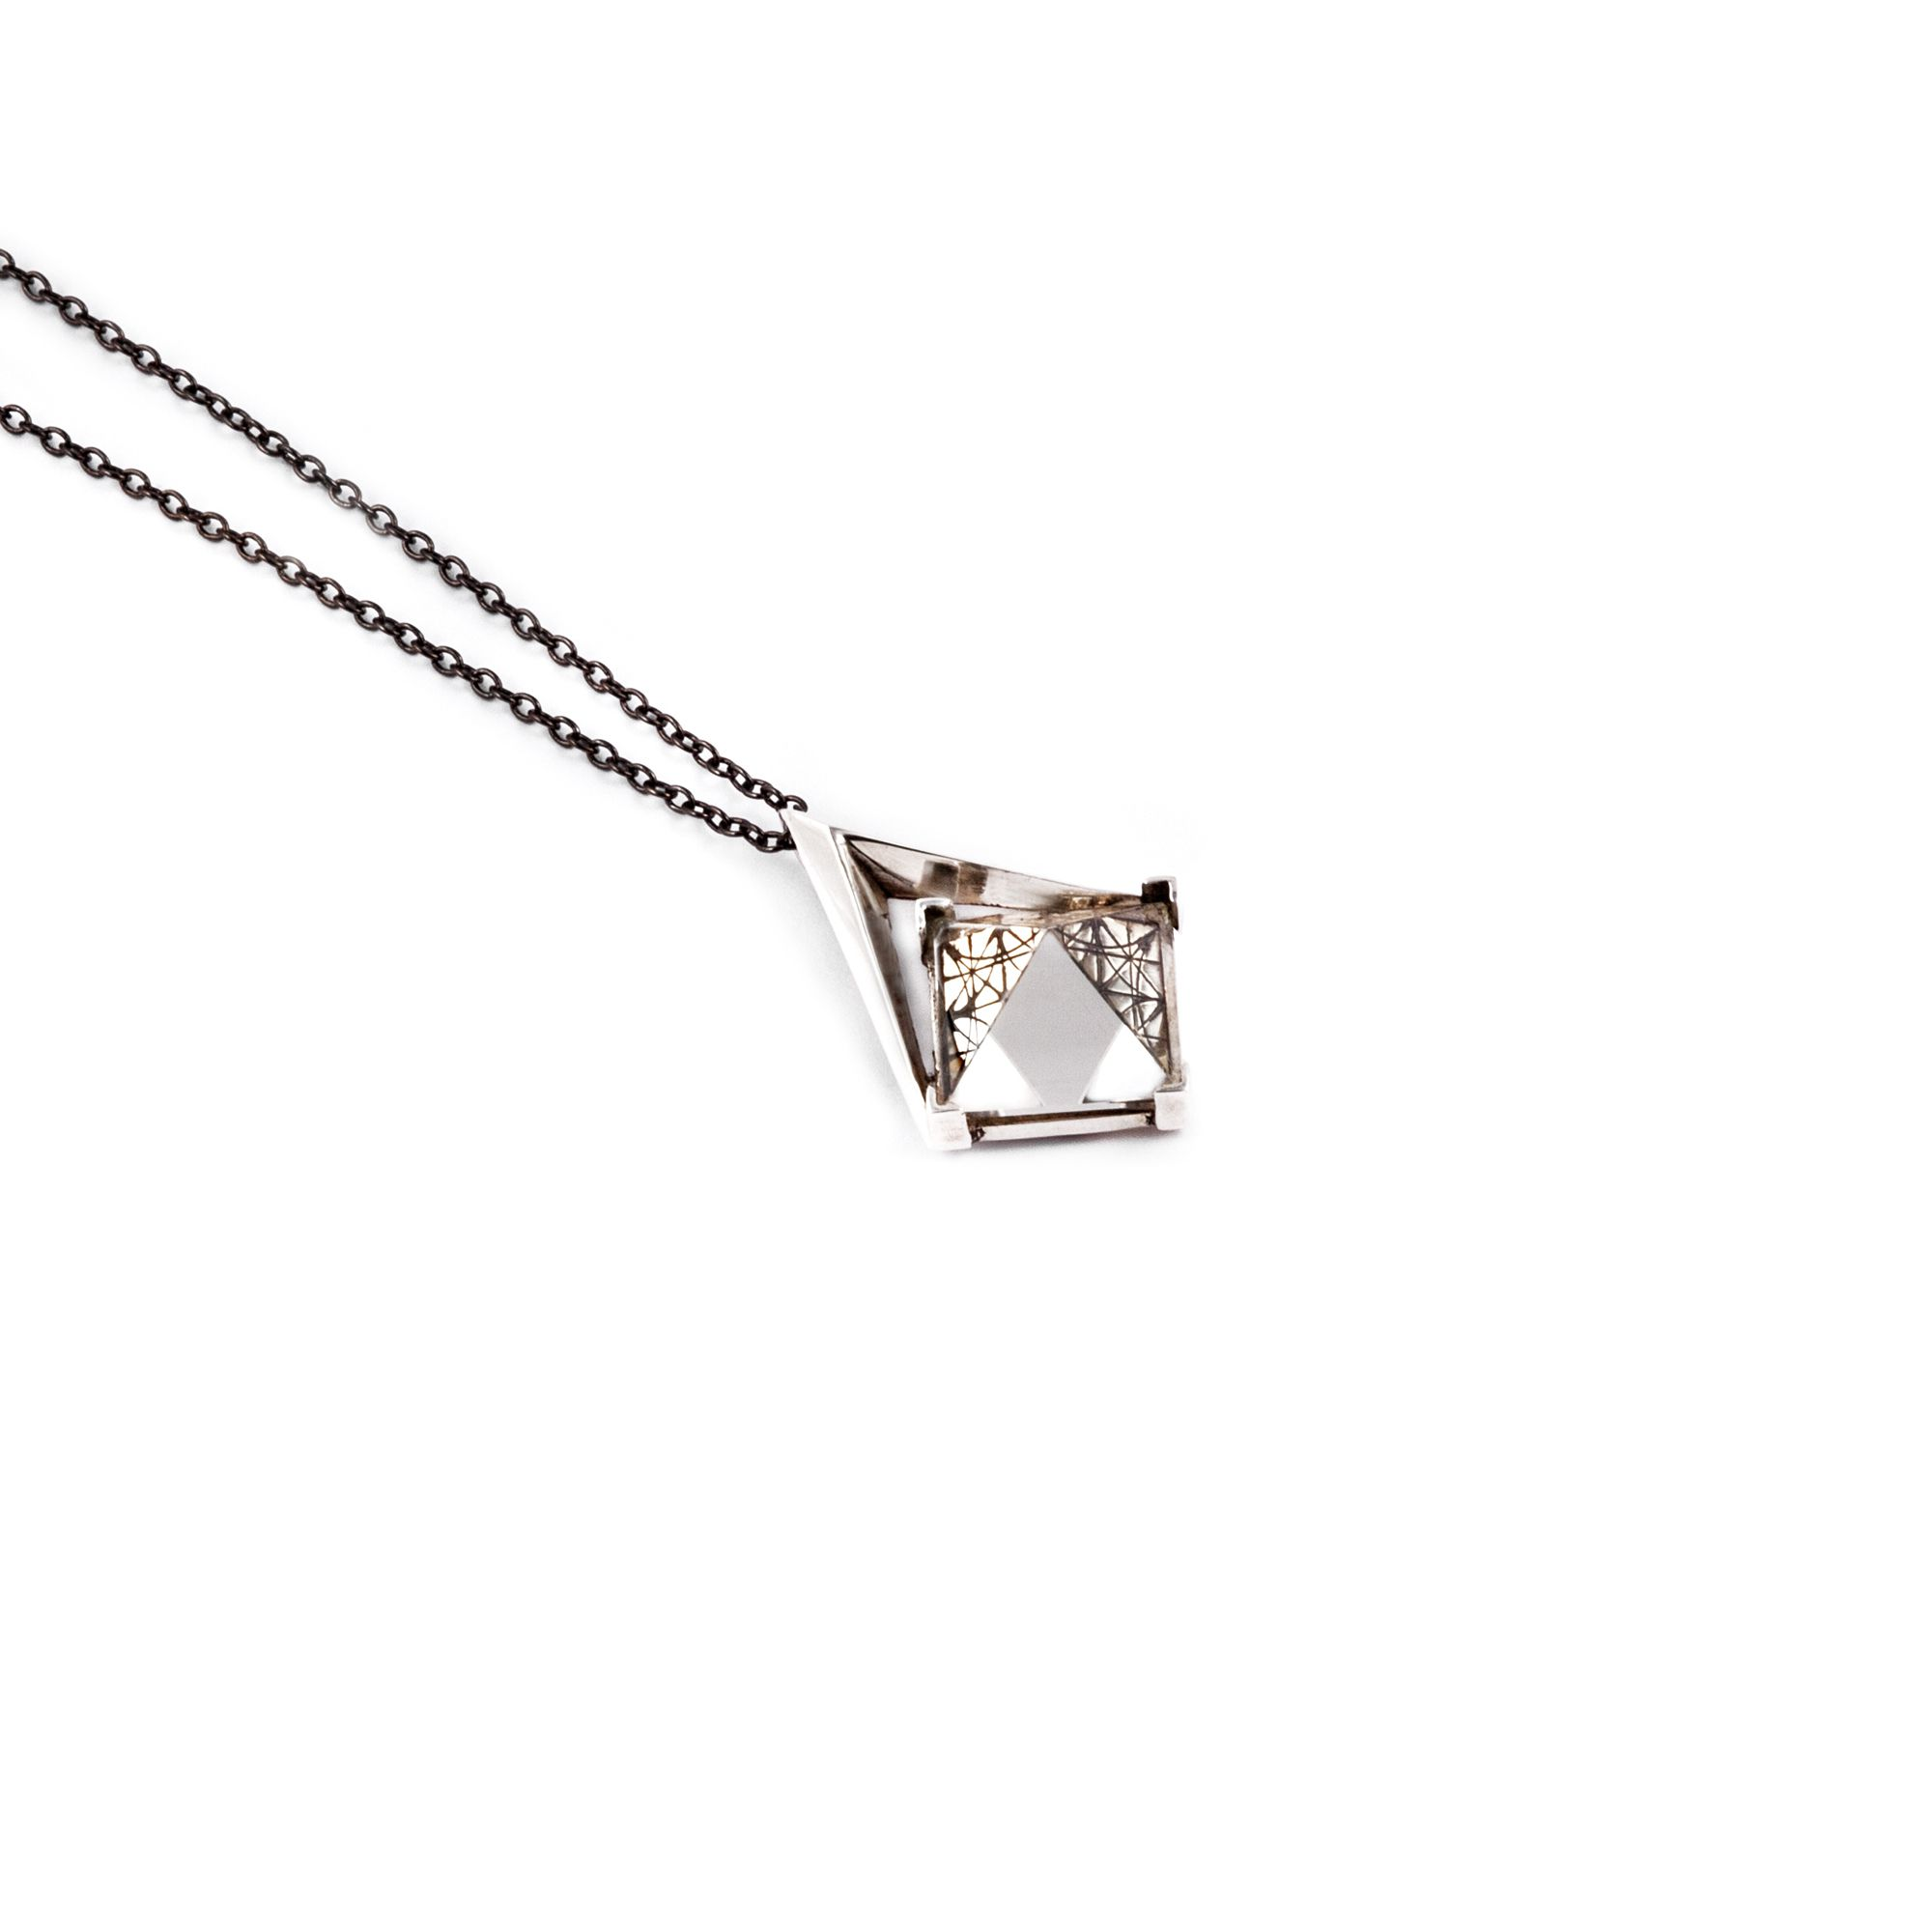 Small 'Entropia' pendant Necklace in silver with pyramid